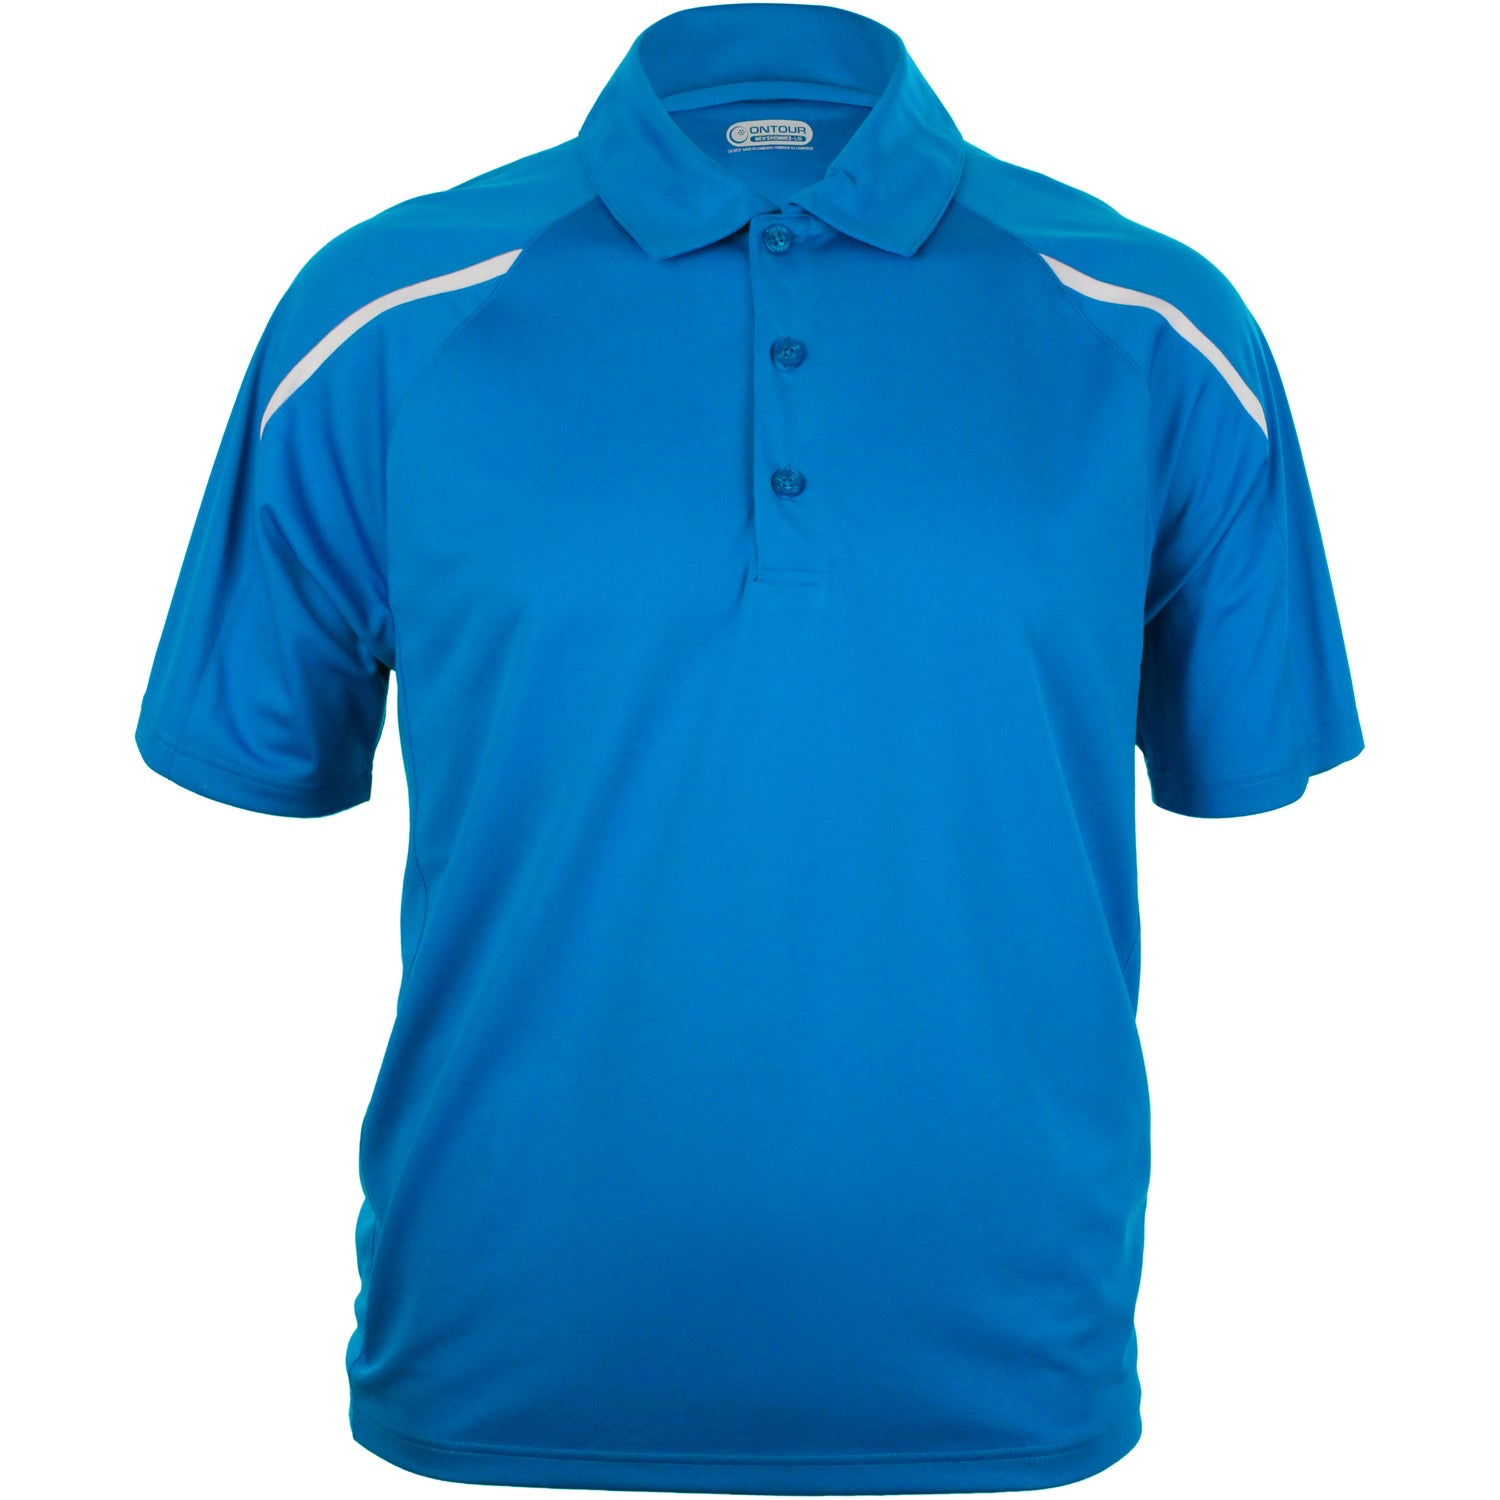 Nyos short sleeve polo shirt by trimark men 39 s for Polo shirts with embroidery